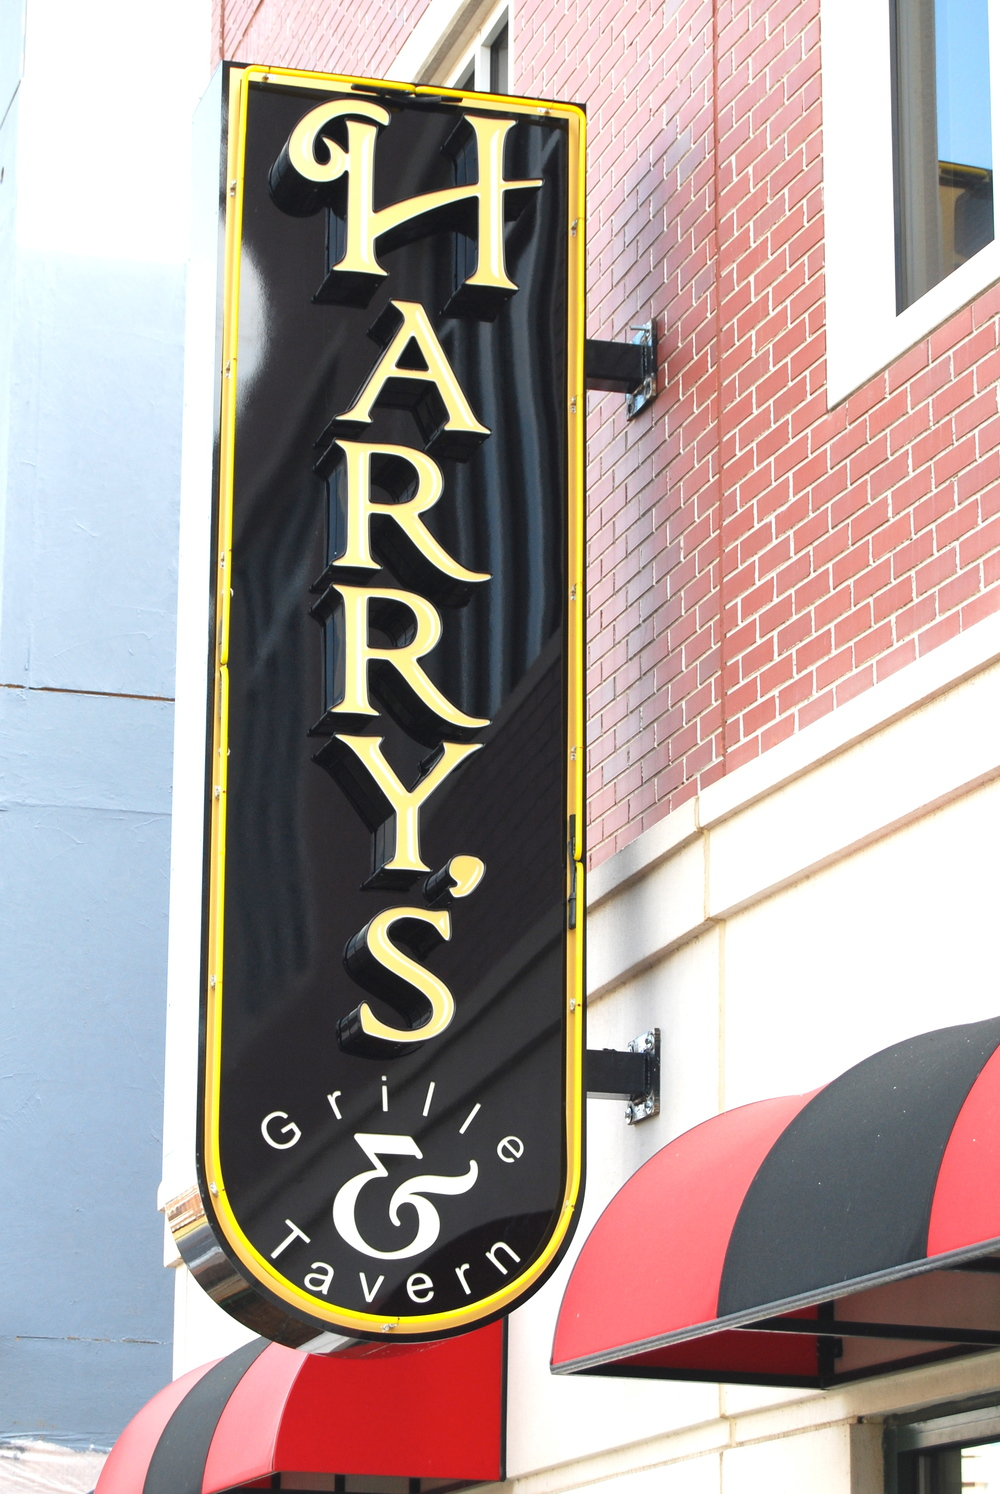 Harry's Grill and Tavern   is located amidst the vibrant Town of Ayrsley. Harry's specializes in personalized service and dining. The Black Label Burger, Harry's Crab Cakes, and Lobster Mac-N'-Cheese are customer favorites along with local brews from Harry's North Carolina craft beer menu. The food, drink, and quality service Harry's provides all embody its promise of quality and a memorable dining experience.  Located at 2127 Ayrsley Town Boulevard Suite 103, Charlotte, NC 28273